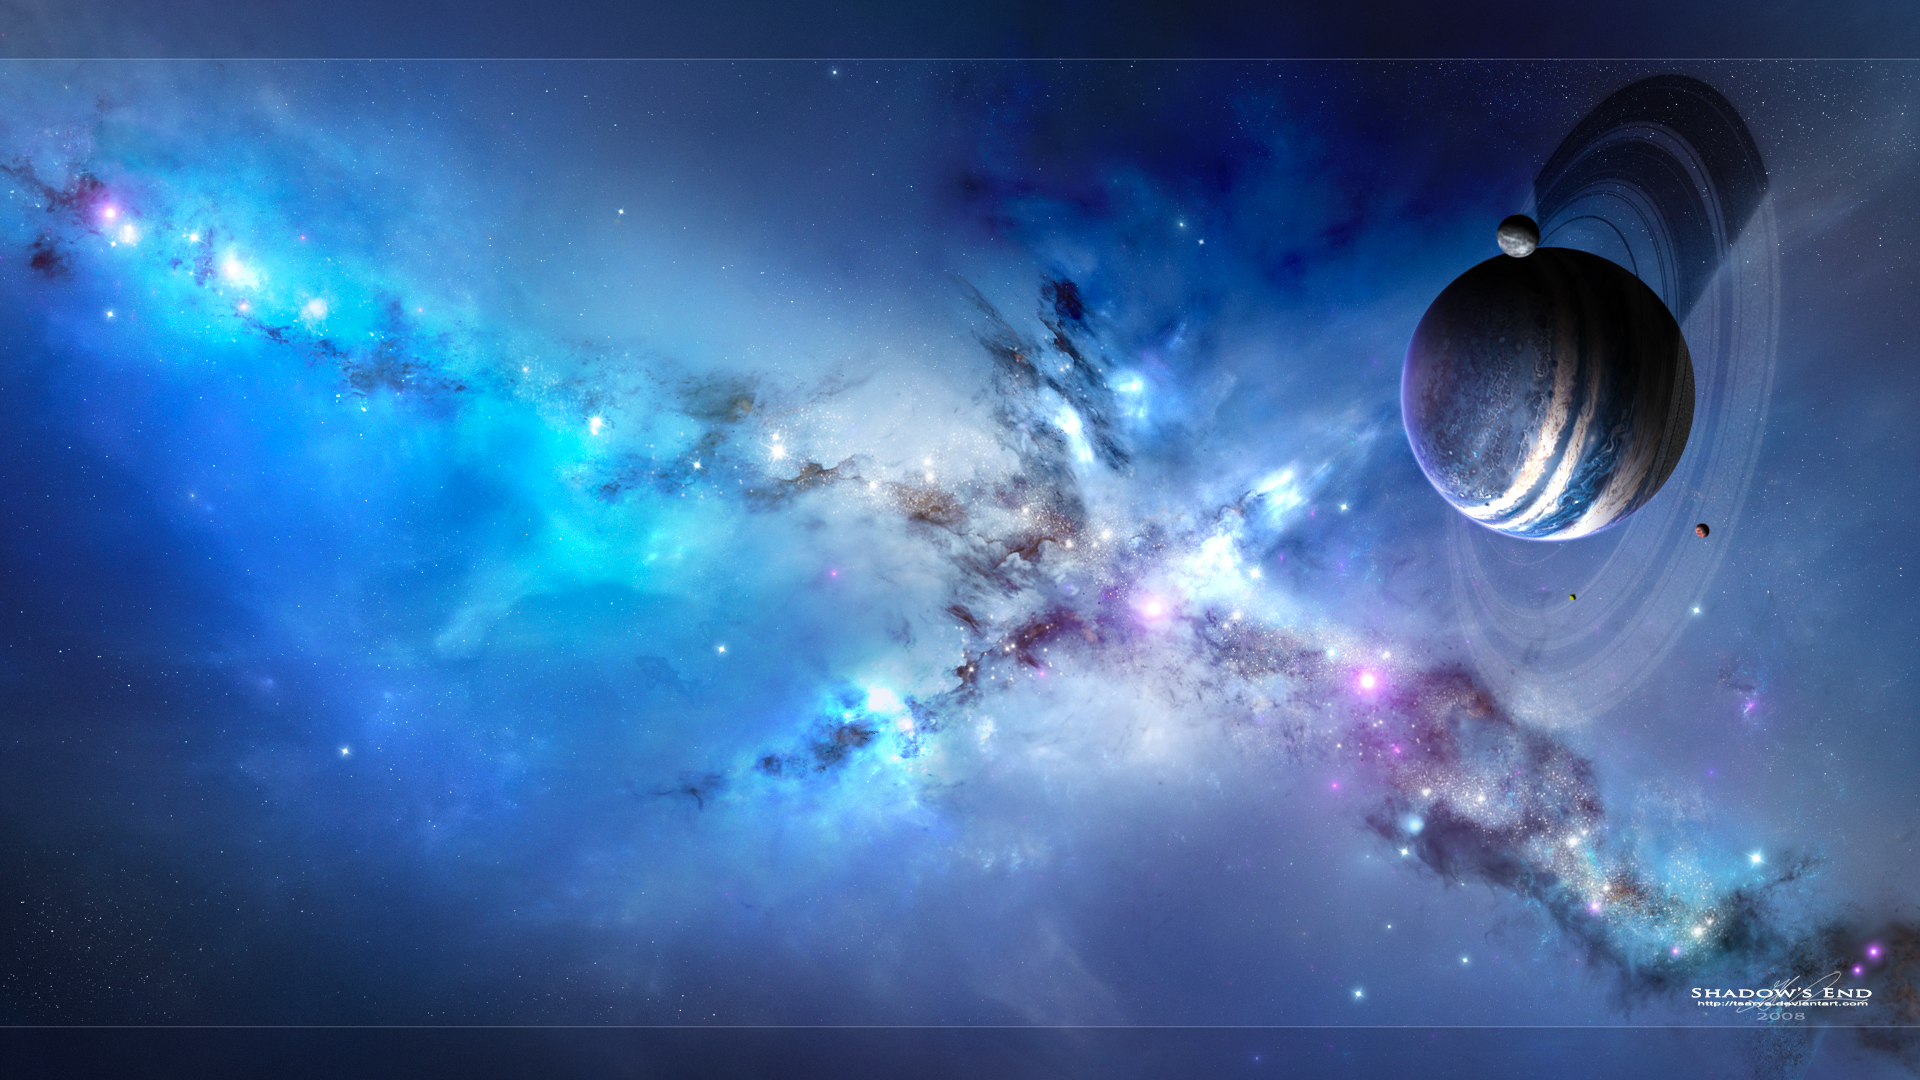 Space/Fantasy Wallpaper Set 32 « Awesome Wallpapers